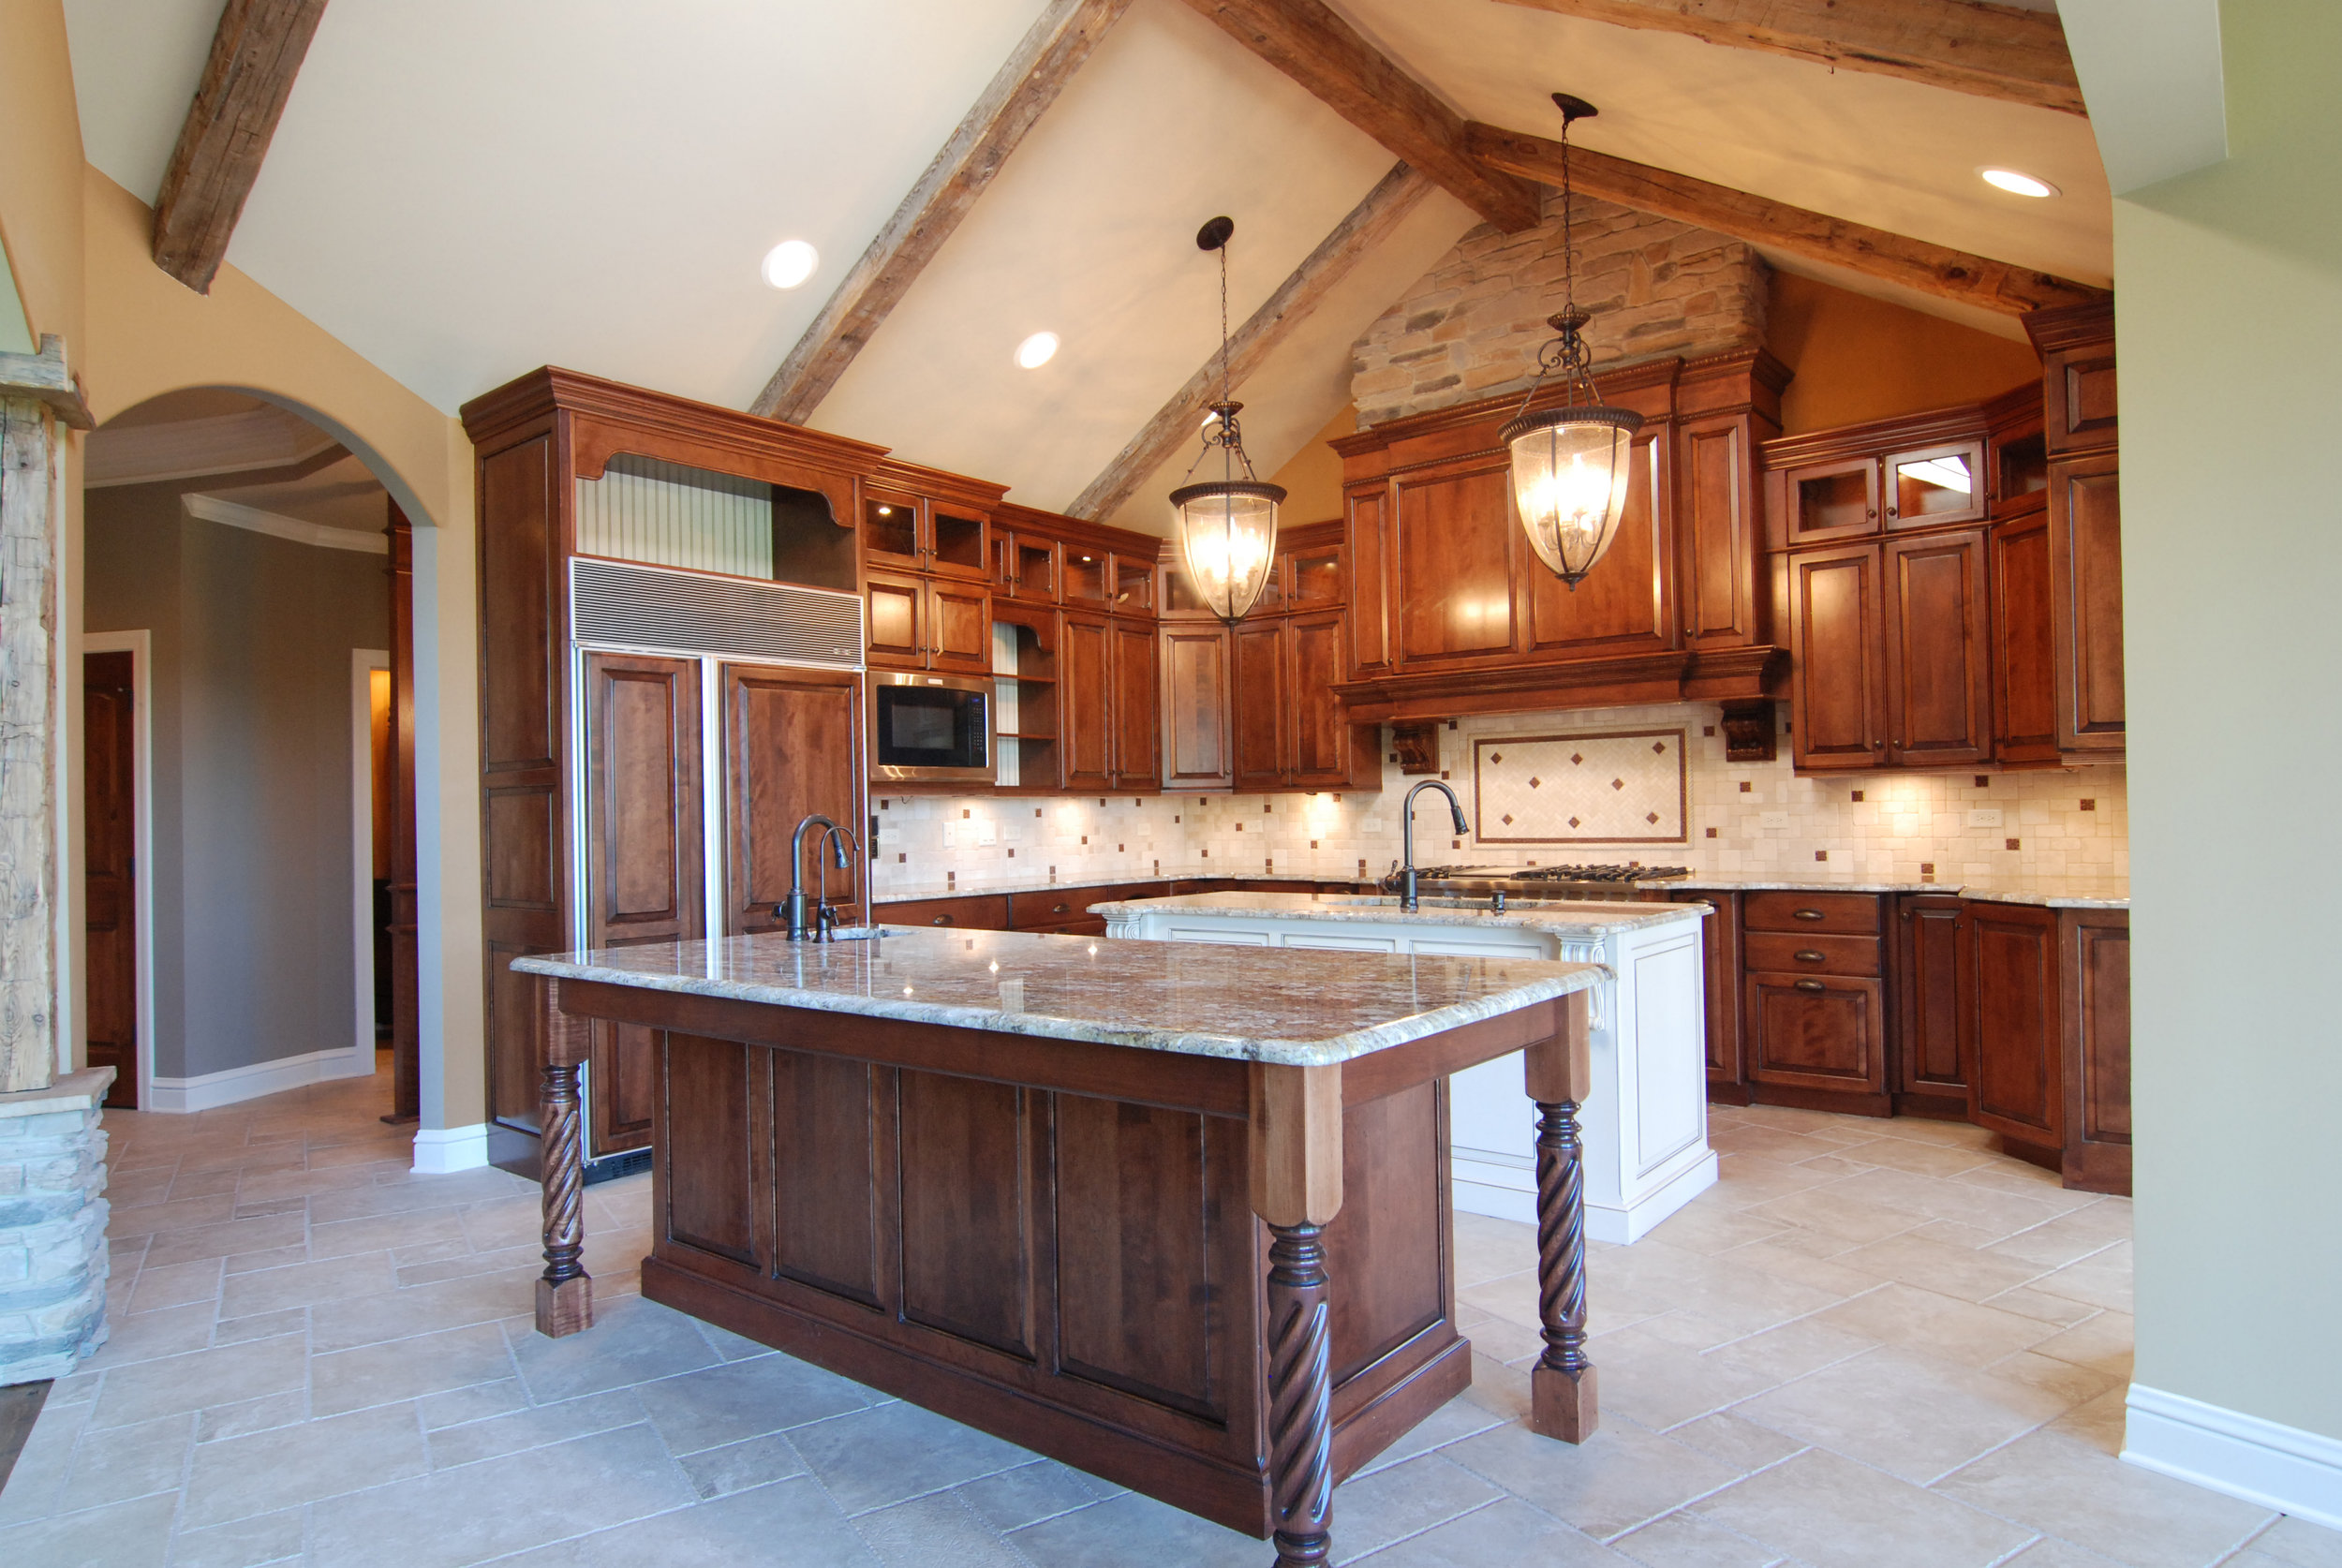 Naperville Completed Kitchen Remodel after Updating